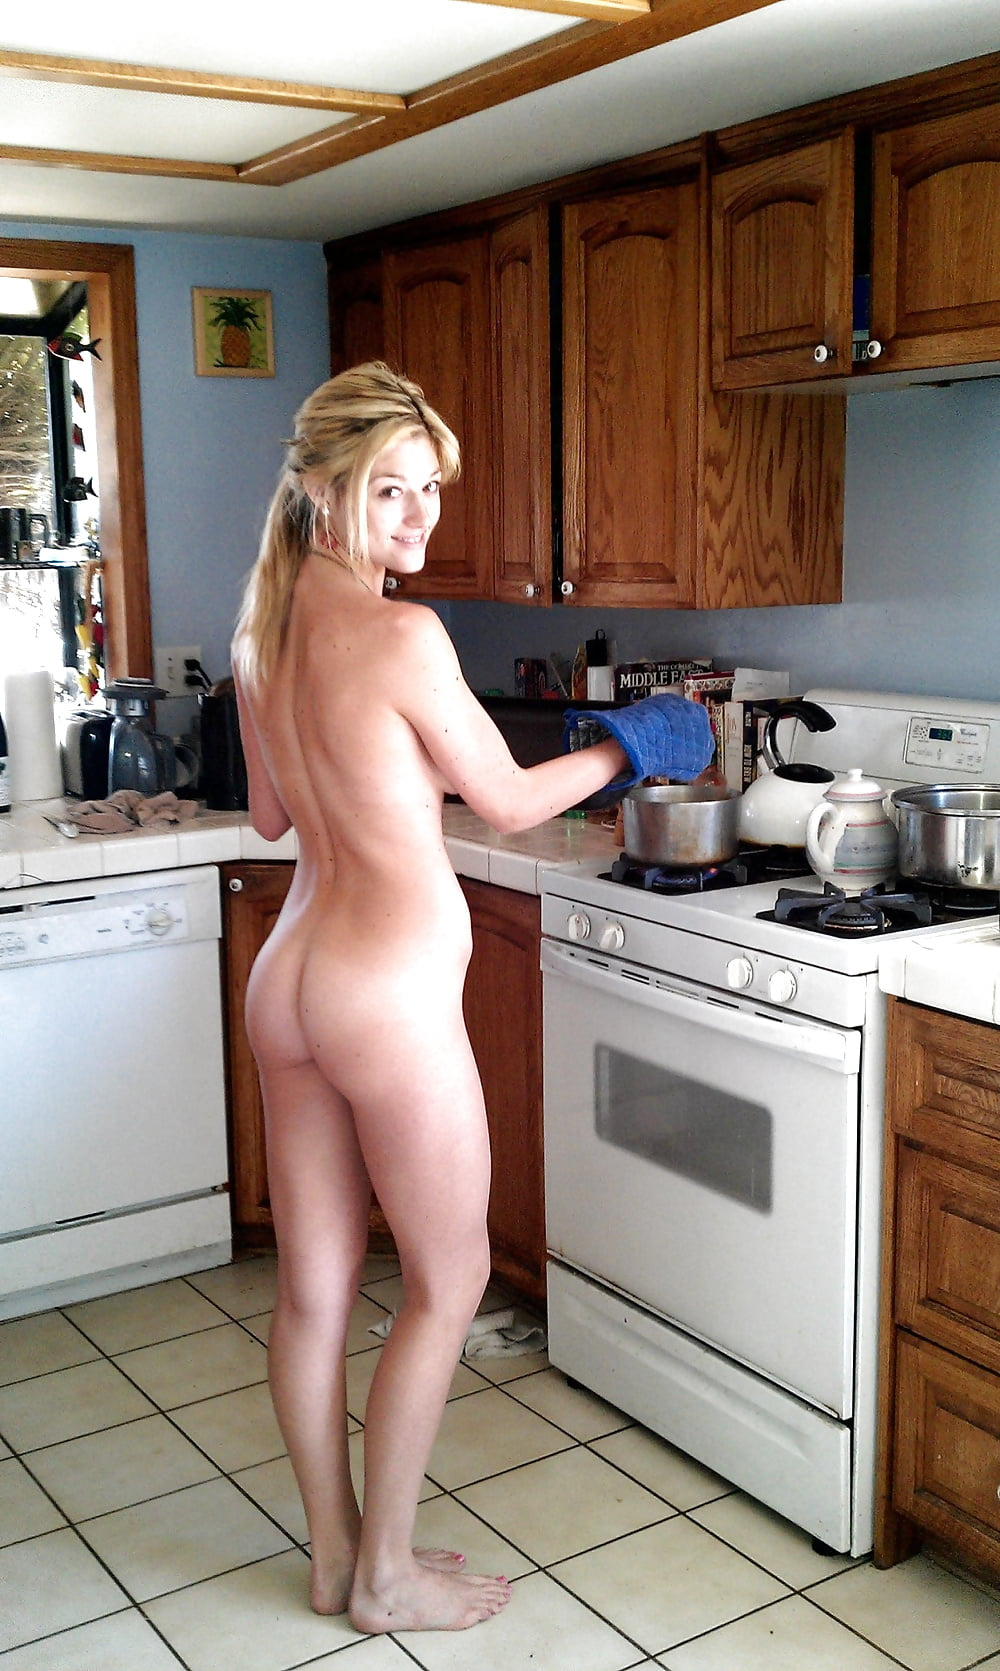 My Husband And I Love Walking Around Naked In The House